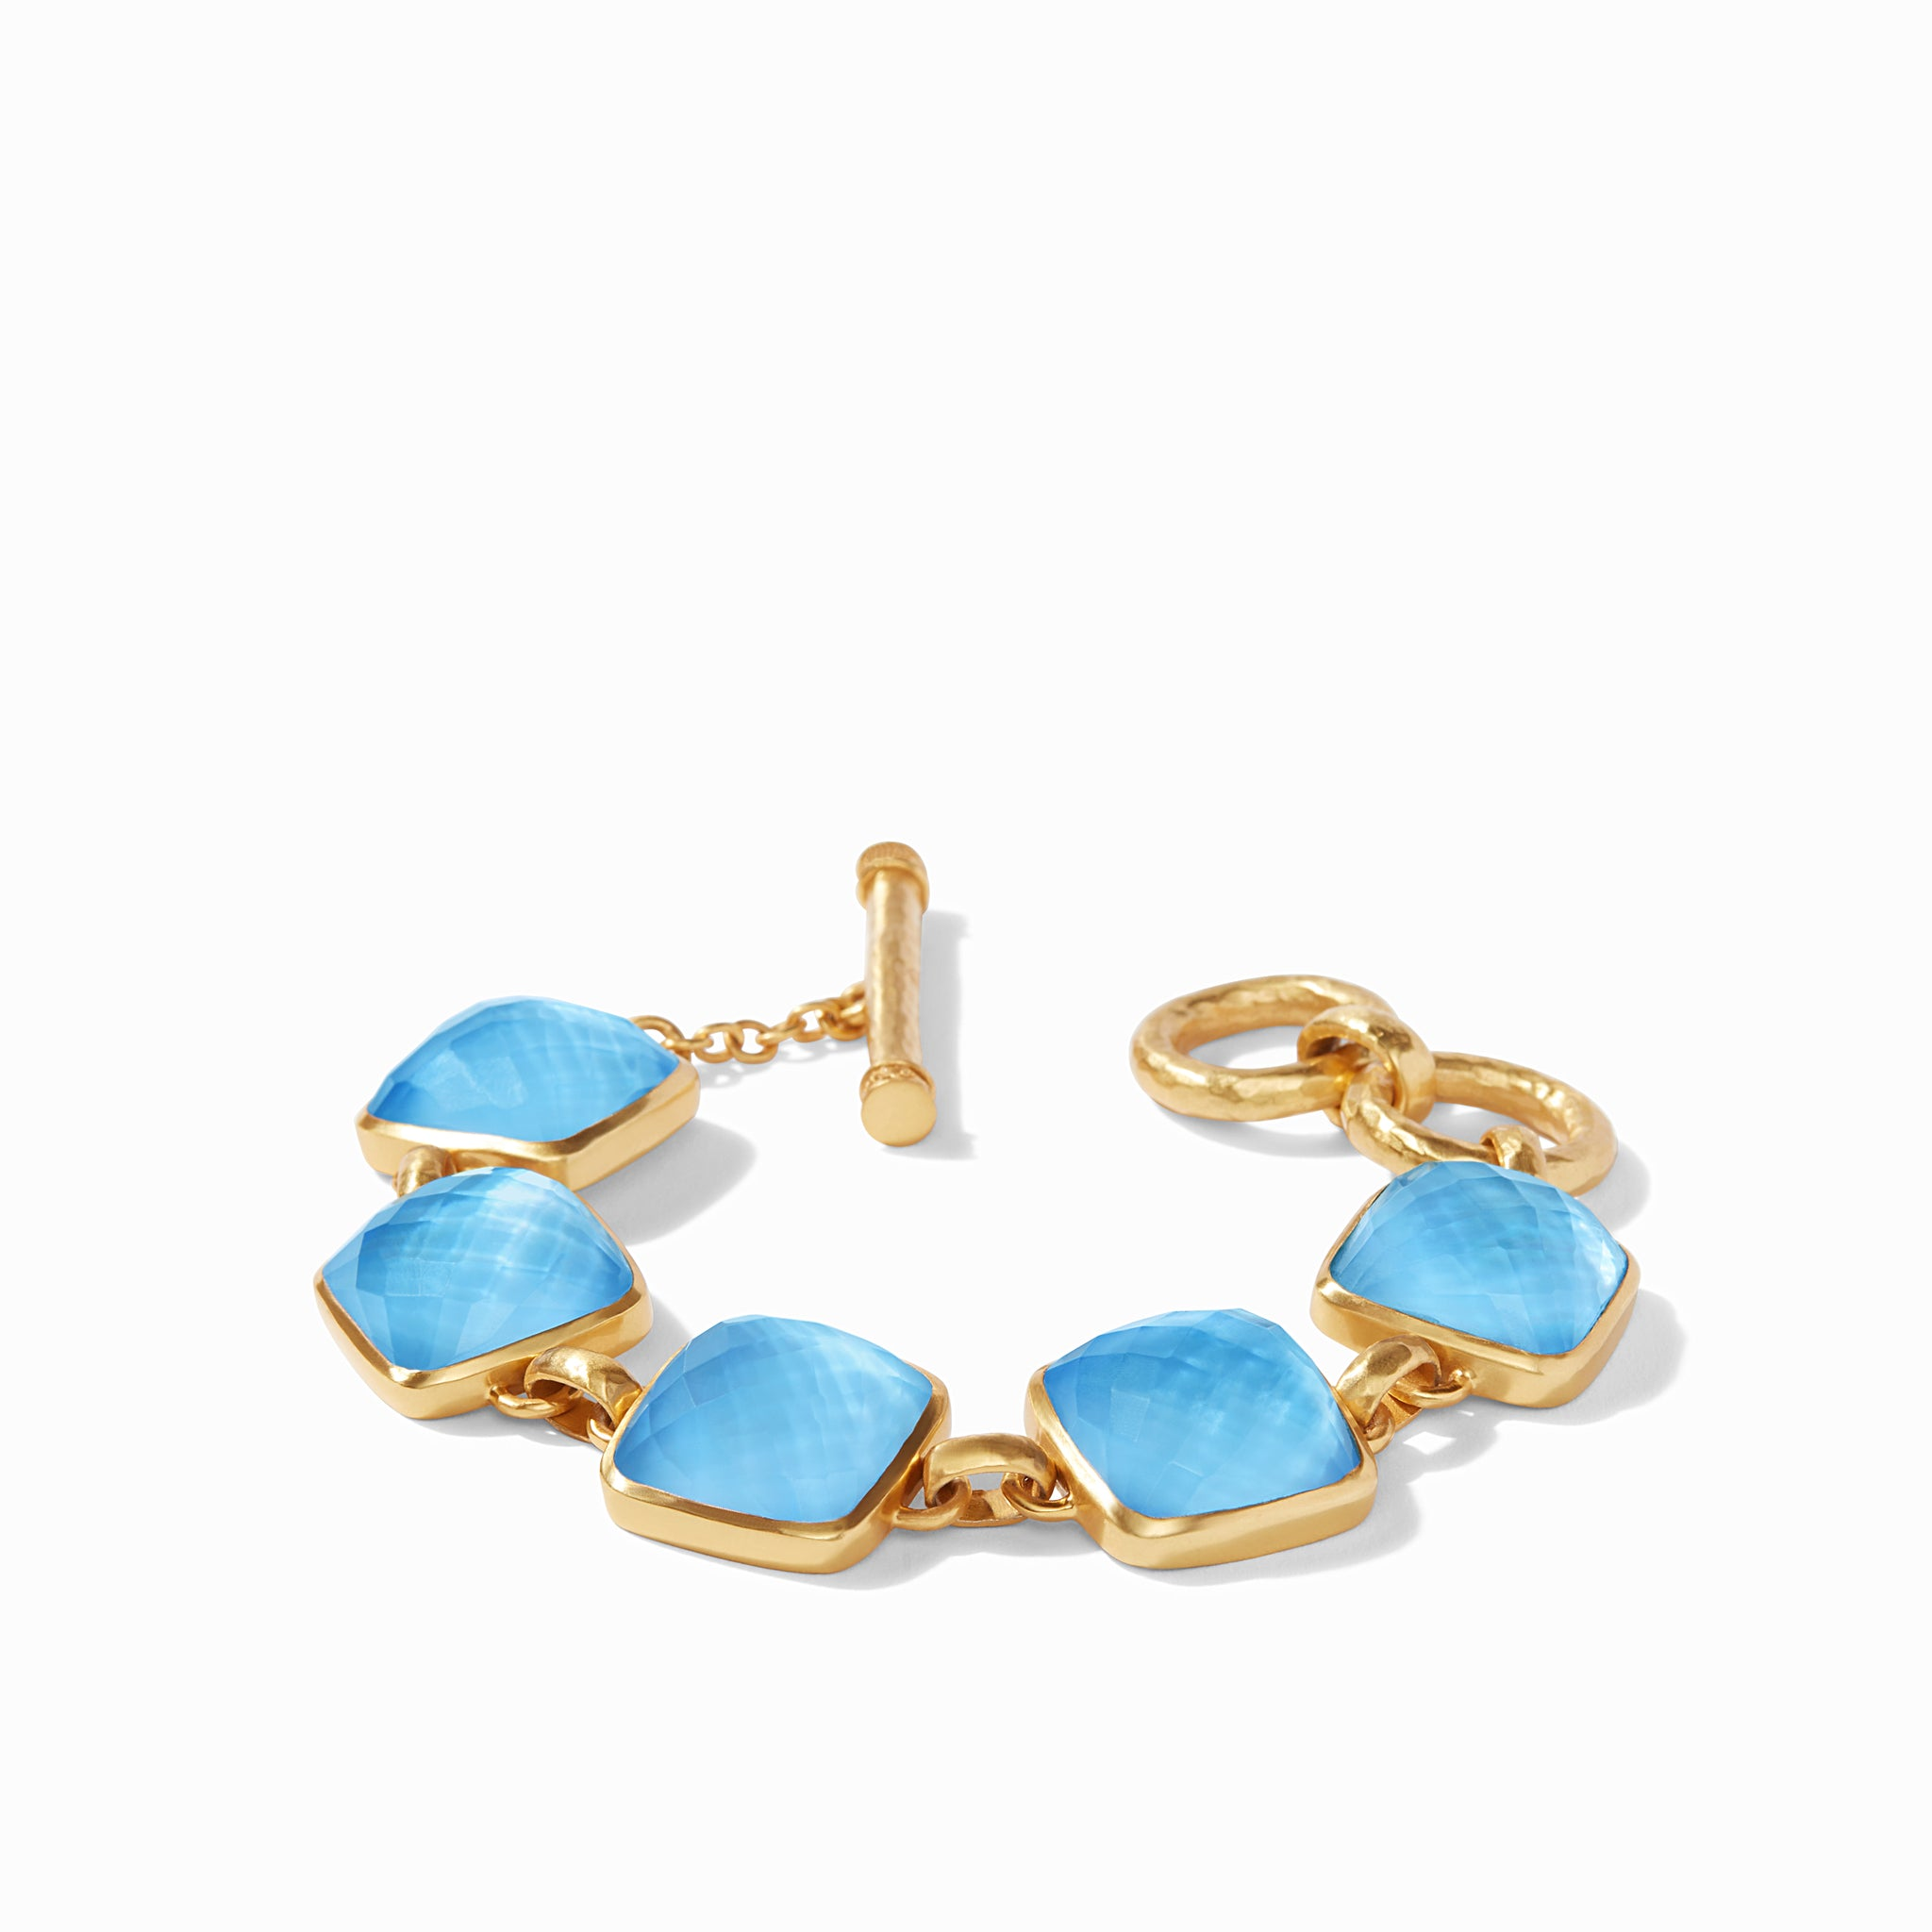 Iridescent Pacific Blue, resort, stacking bangles, irresistibly iridescent, summertime 2020, classic bracelet 2020